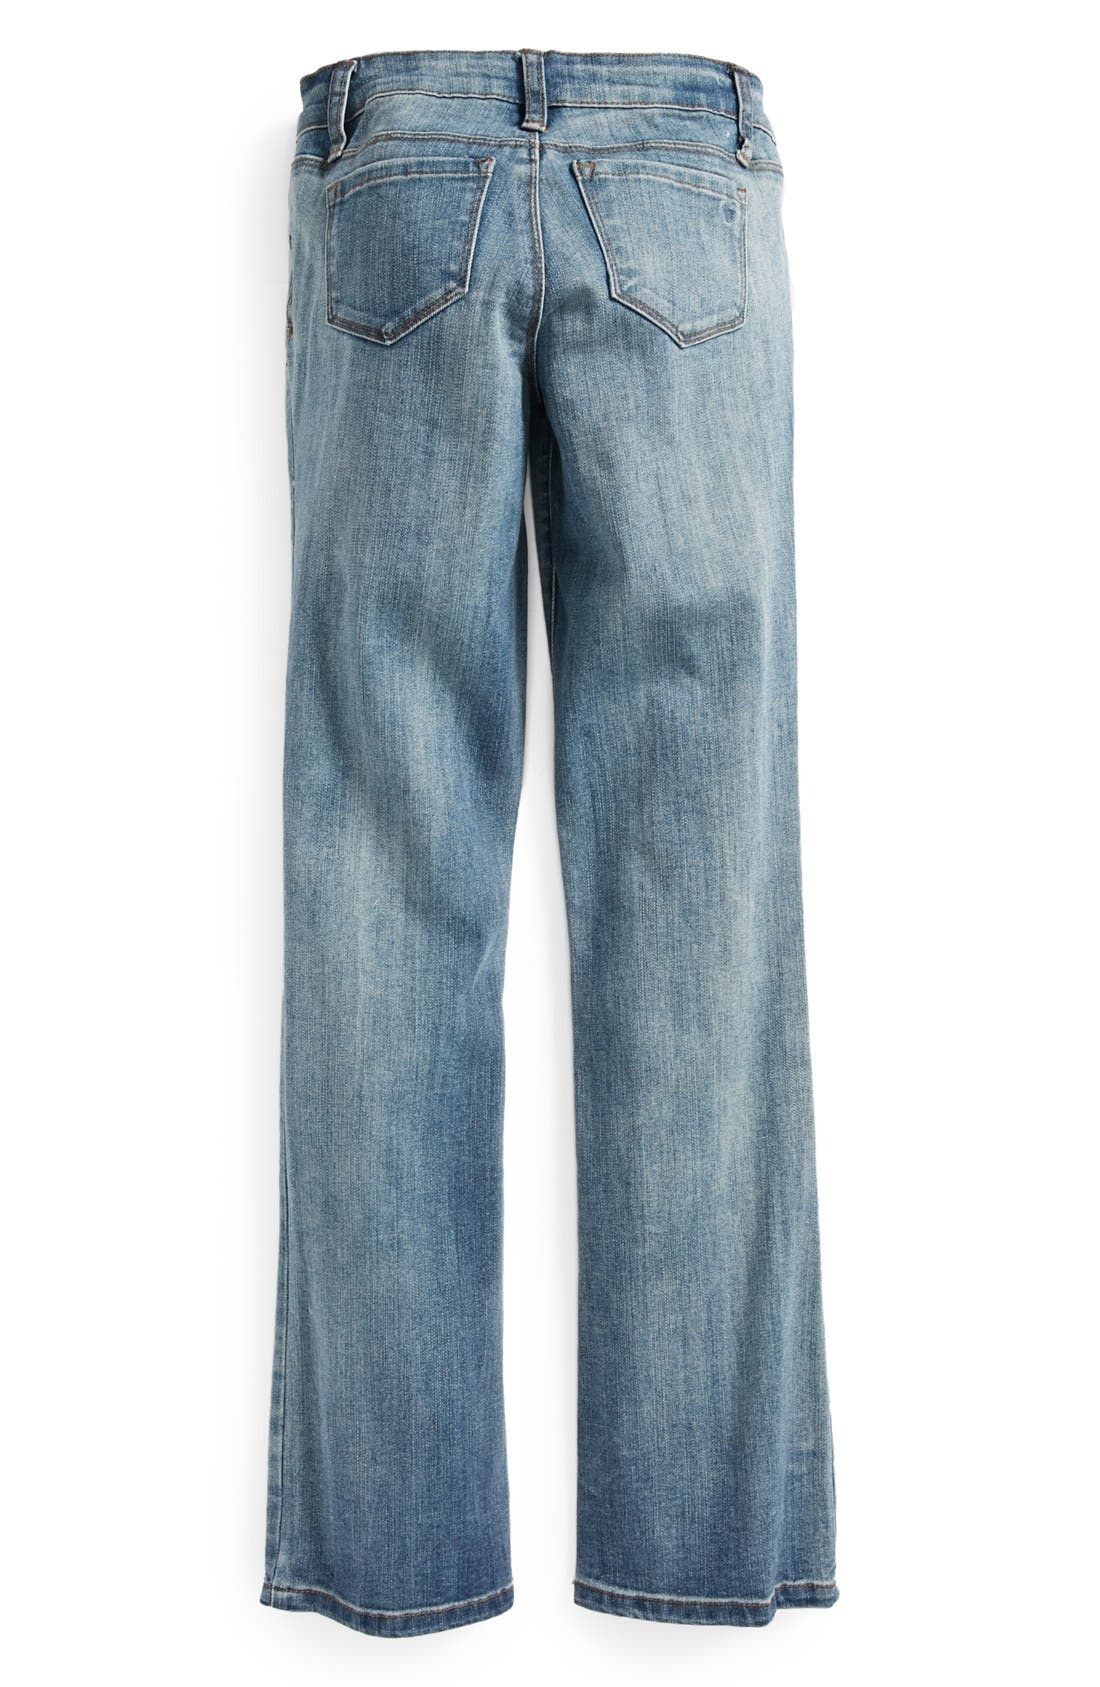 Alternate Image 1 Selected - Tractr Bootcut Jeans (Big Girls)